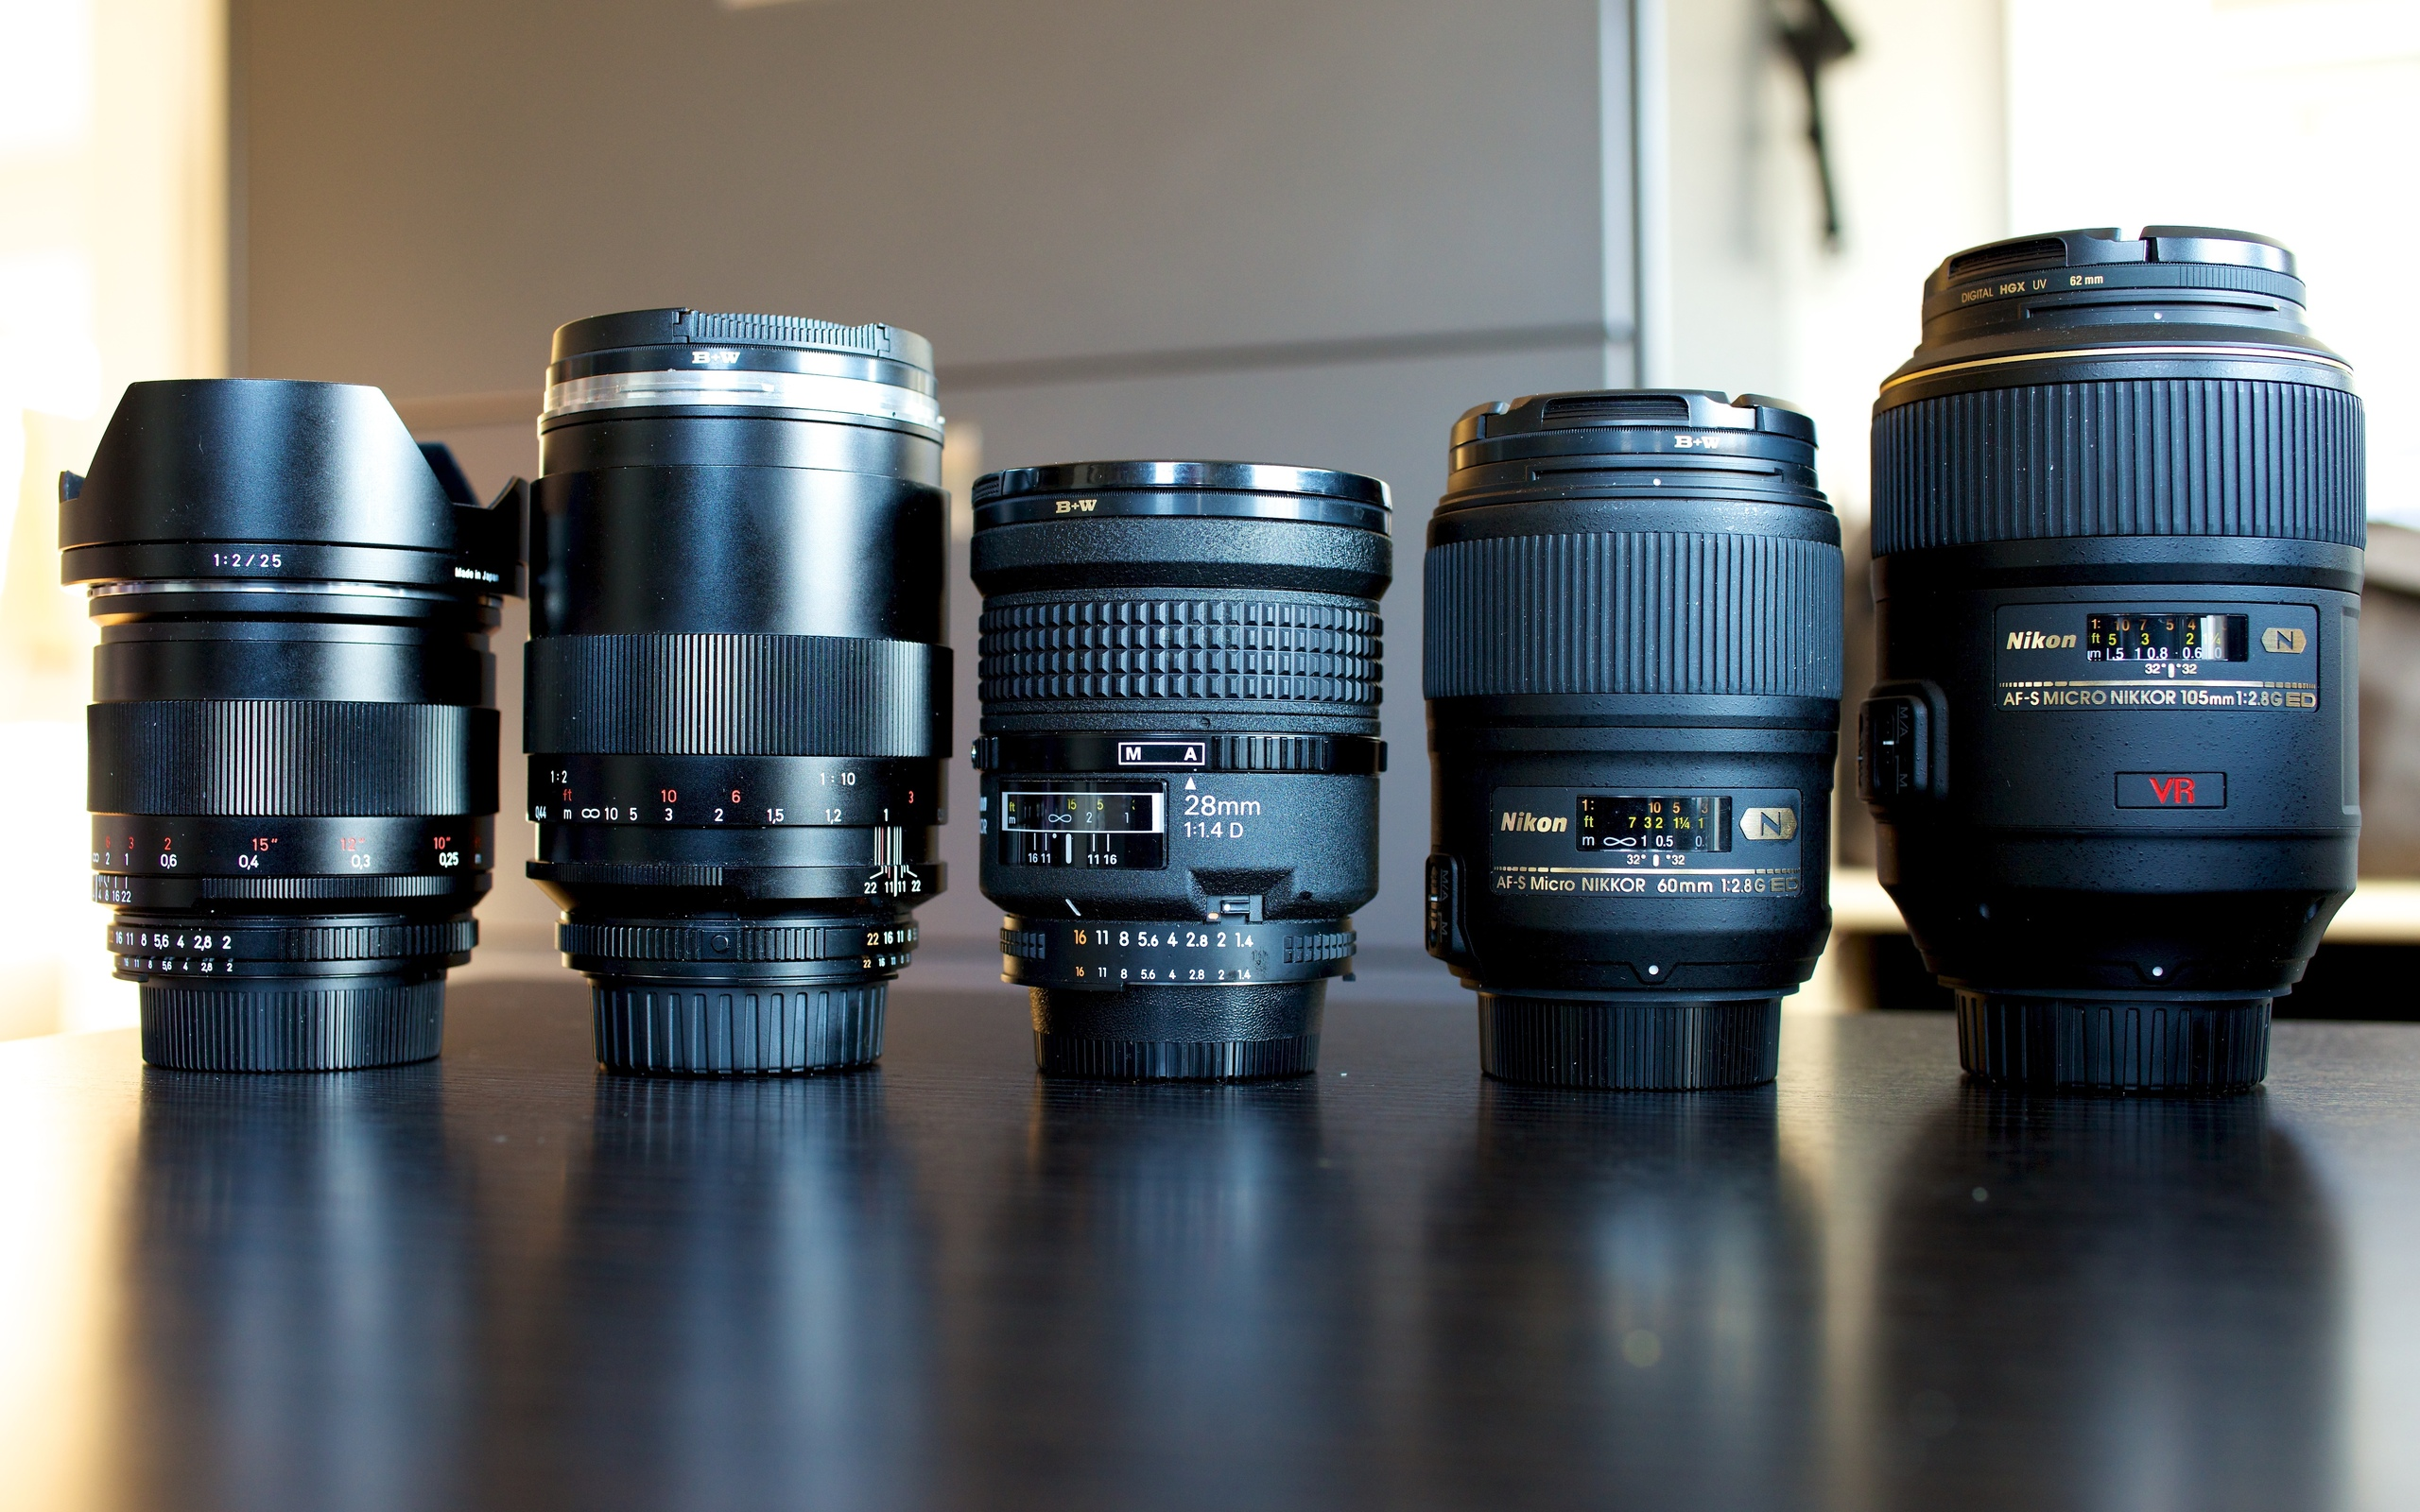 Lenses For The D800 Nikon Hd Wallpaper Background Image 2560x1600 Id 312709 Wallpaper Abyss